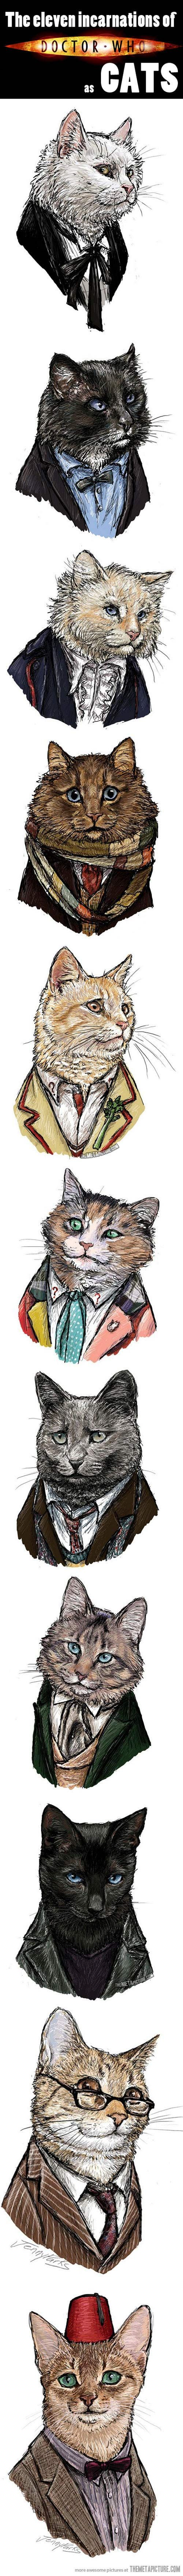 All the incarnations of Doctor Who as cats...which I think is as awesome as it is random. LOL!